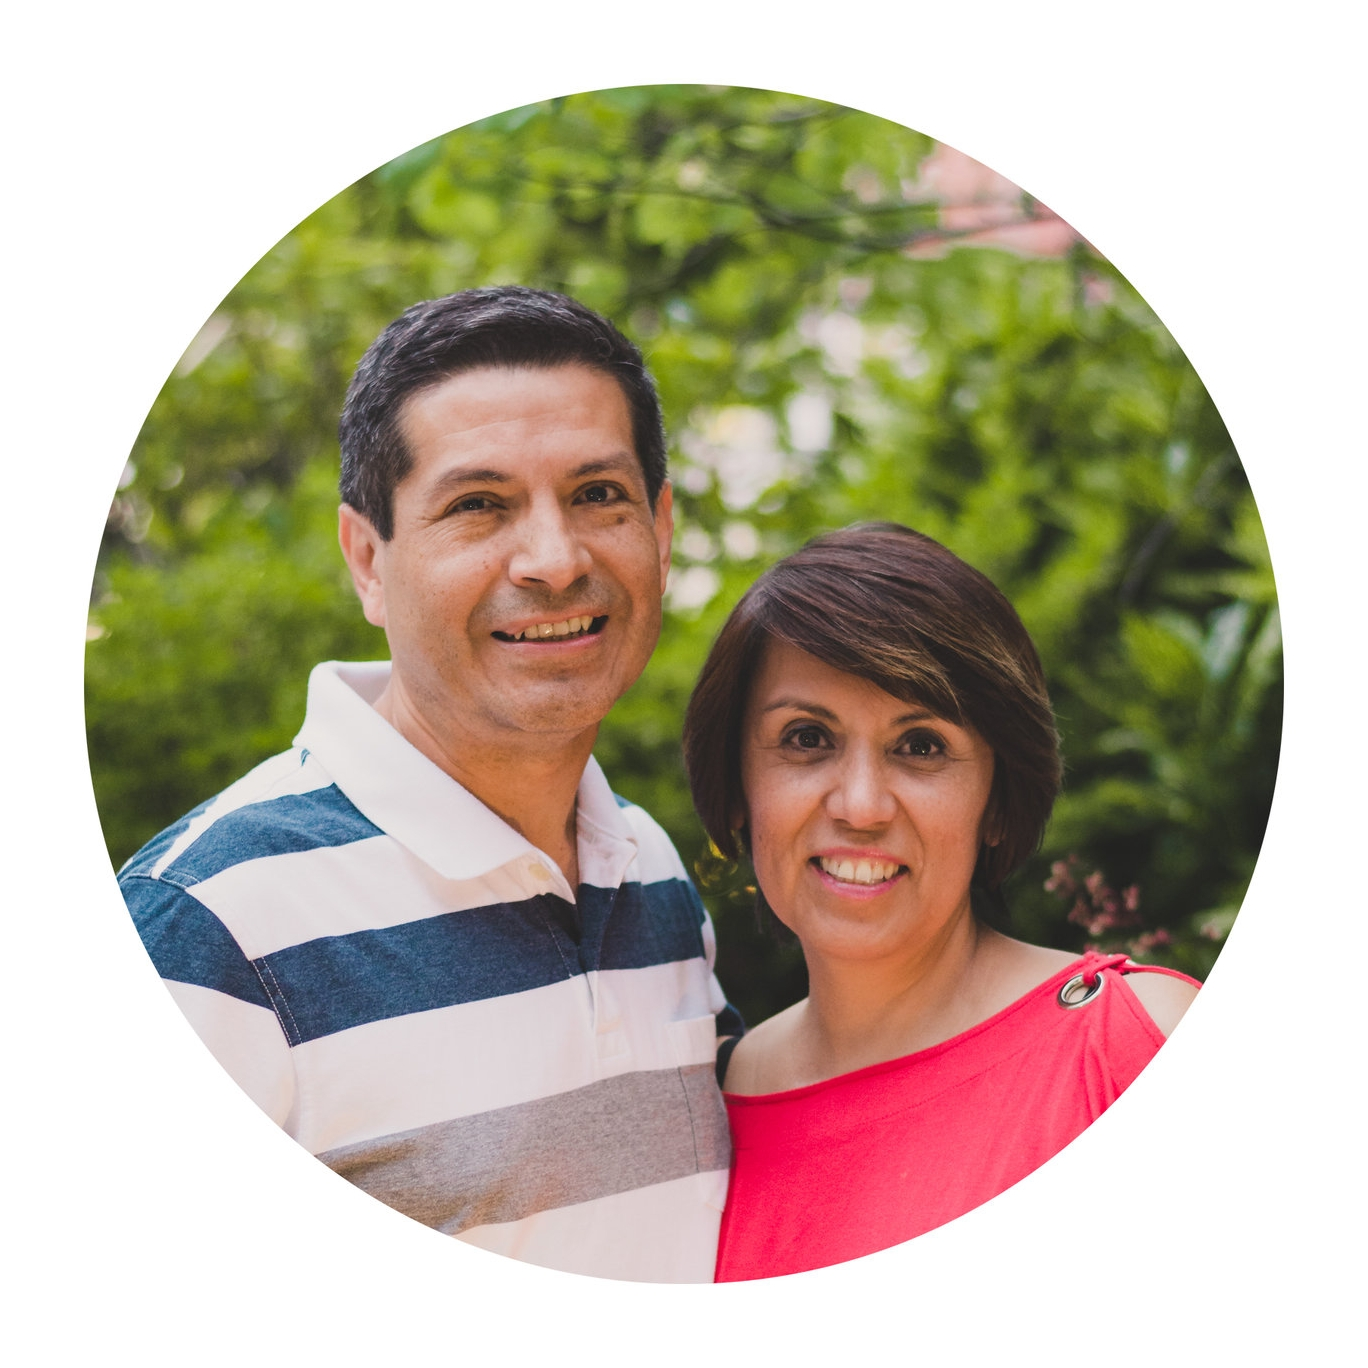 Edwin & Lucy Guardado    Campus : Center Moriches   Day : Mondays   Time : 7pm   Location : Please e-mail Edwin at edwin4gs@yahoo.com!   Upcoming Dates : 9/16, 9/30, 10/14, 10/28, 11/11, 12/2